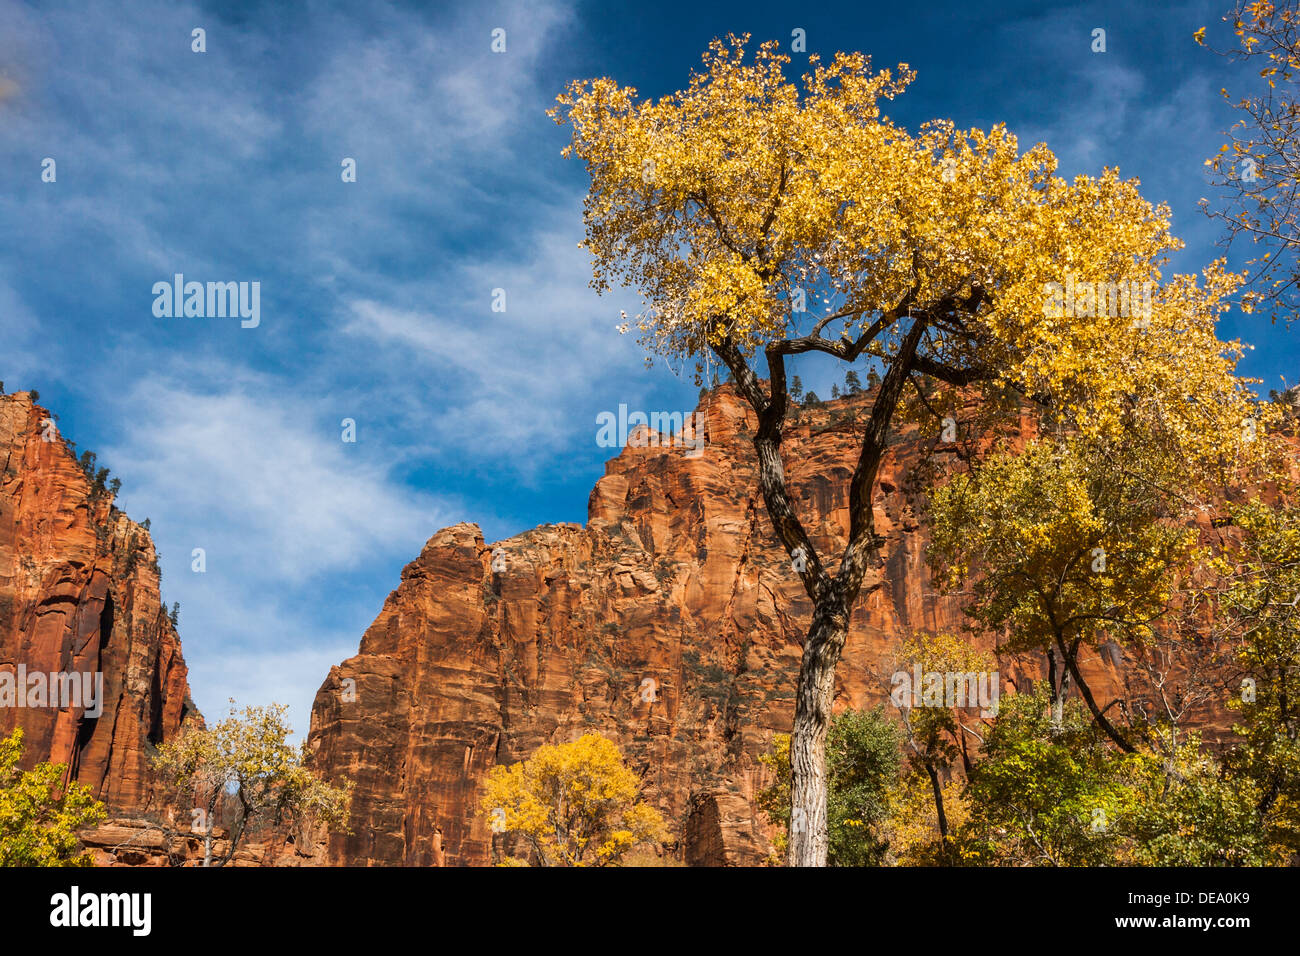 Cottonwood tree with autumn colours in sandstone canyon, Zion National Park, Utah, UT, USA - Stock Image